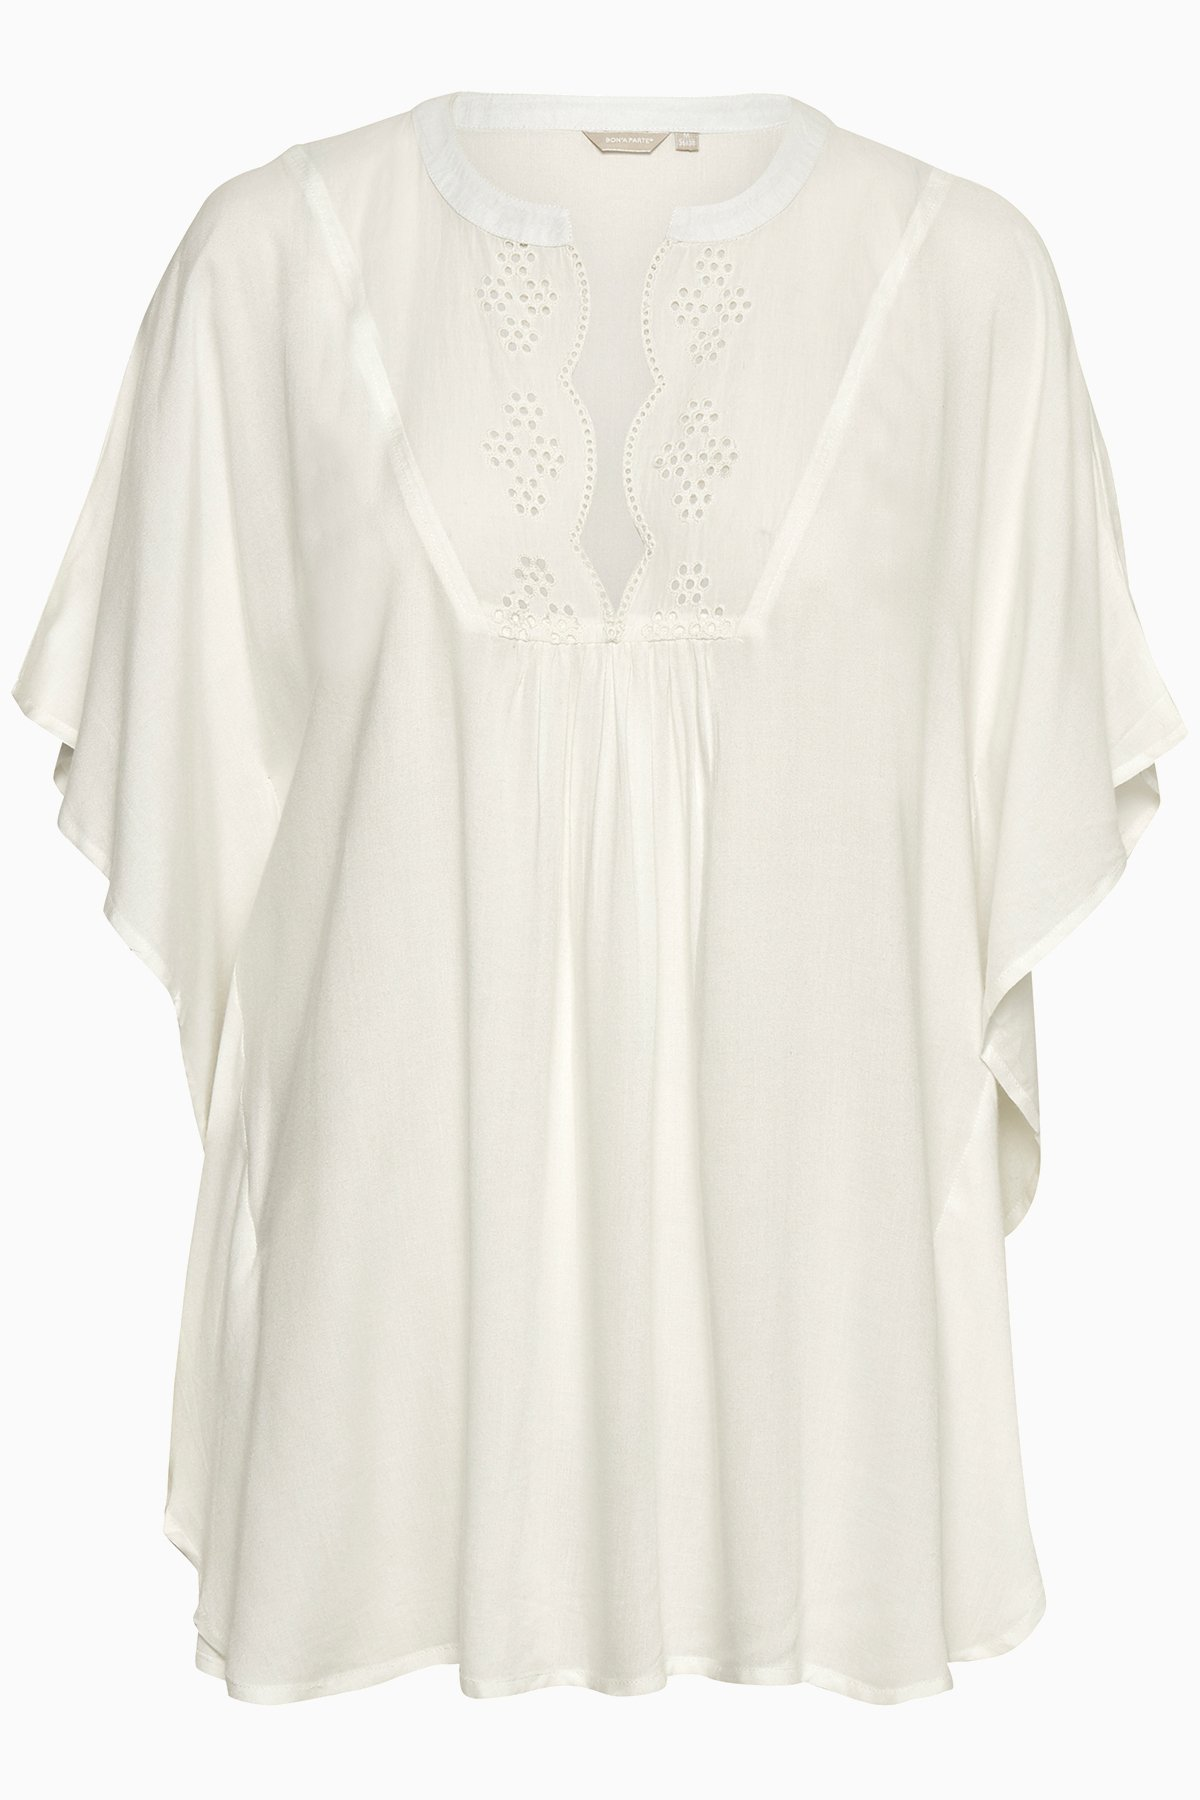 Image of BonA Parte Dame Let Imme bluse - Off-white